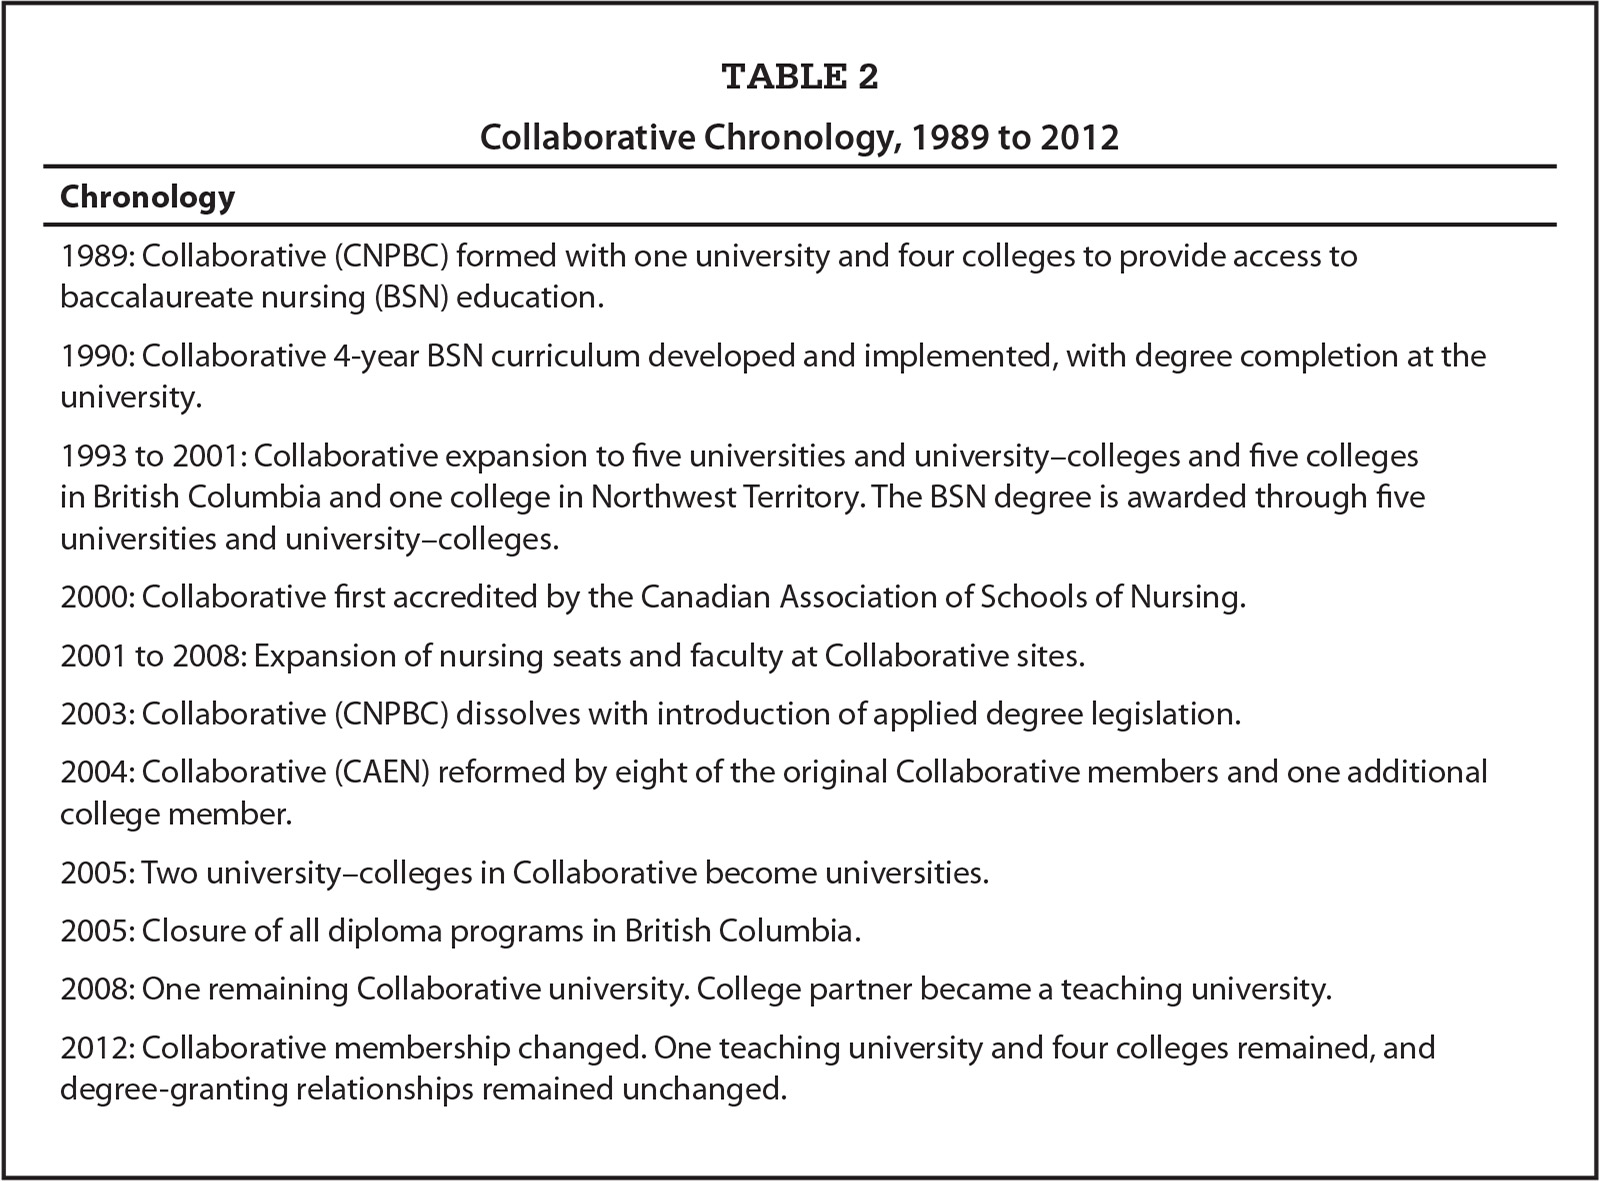 Collaborative Chronology, 1989 to 2012